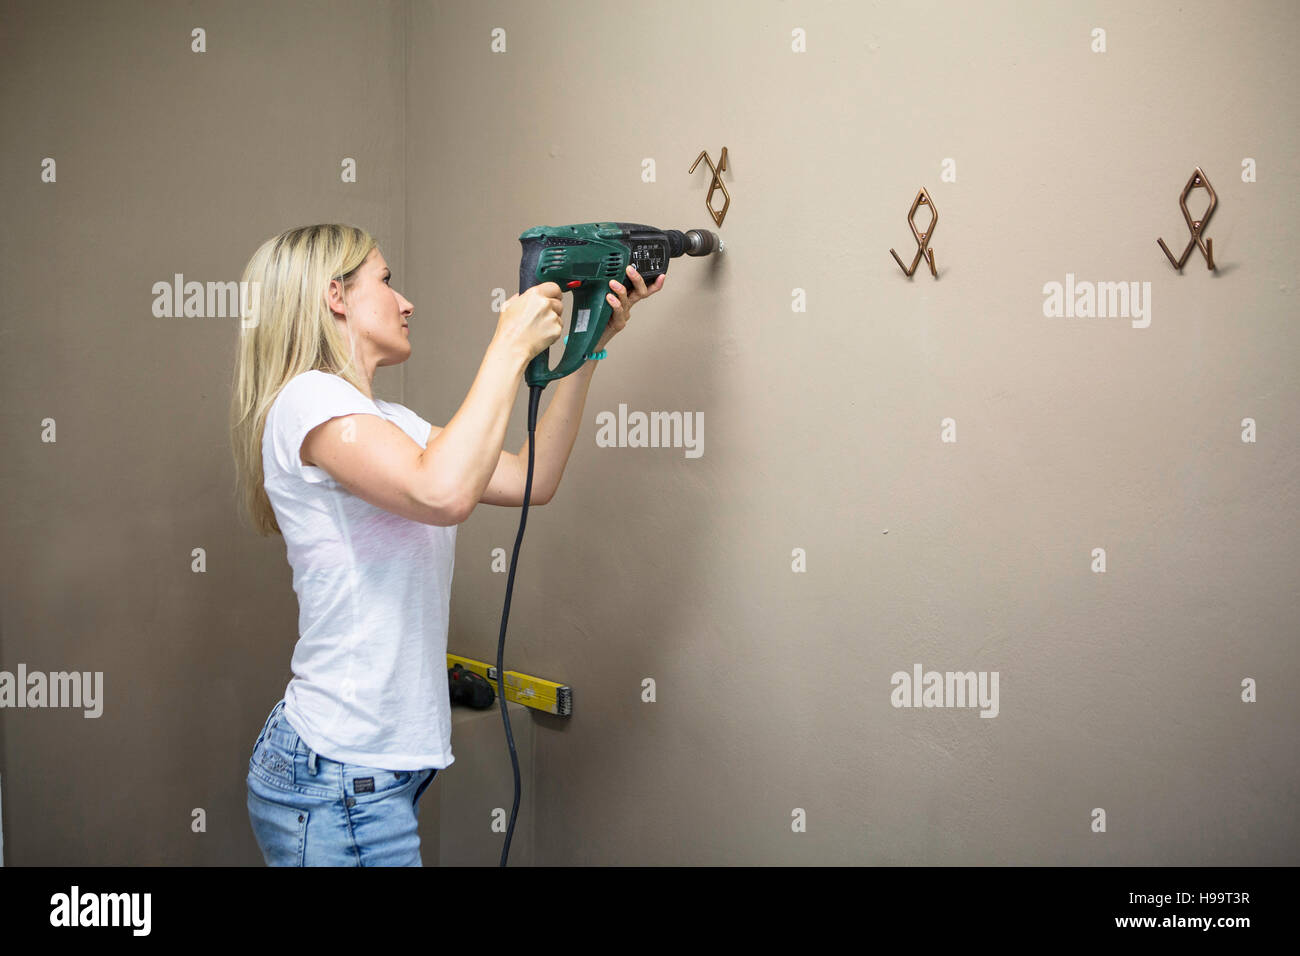 Woman using drill to fix coat hook in apartment - Stock Image